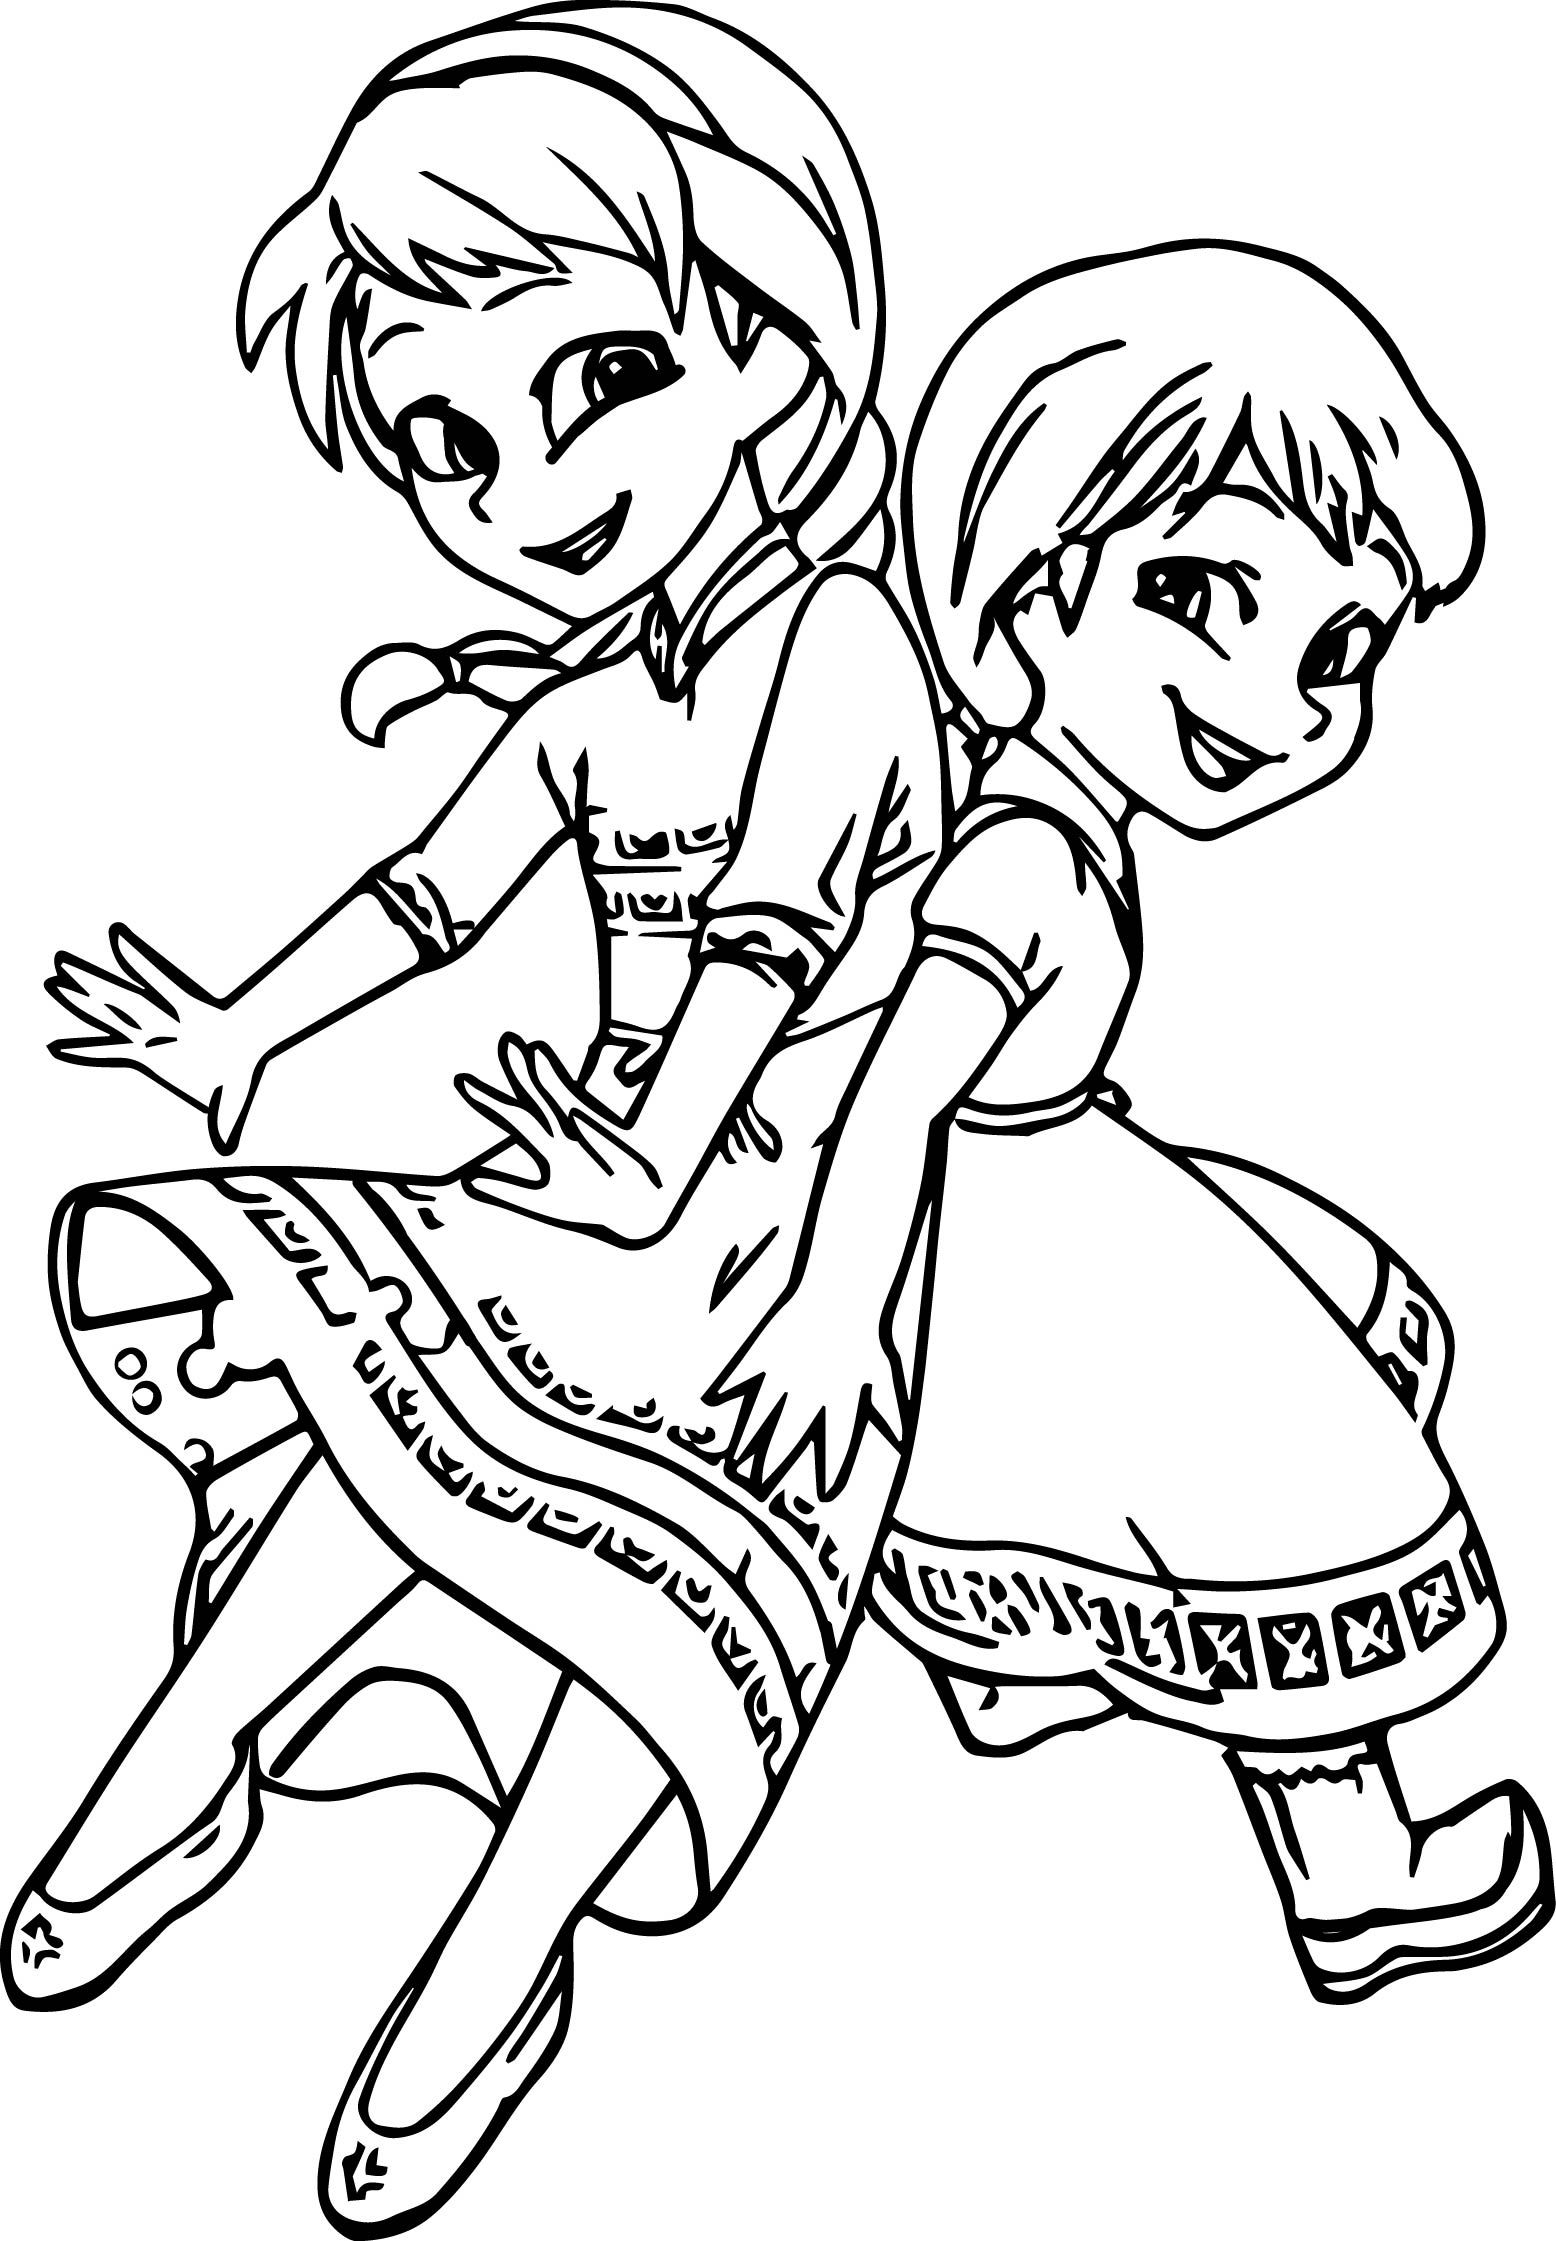 Elsa Coloring Pages Elsa Coloring Elsa Coloring Pages Coloring